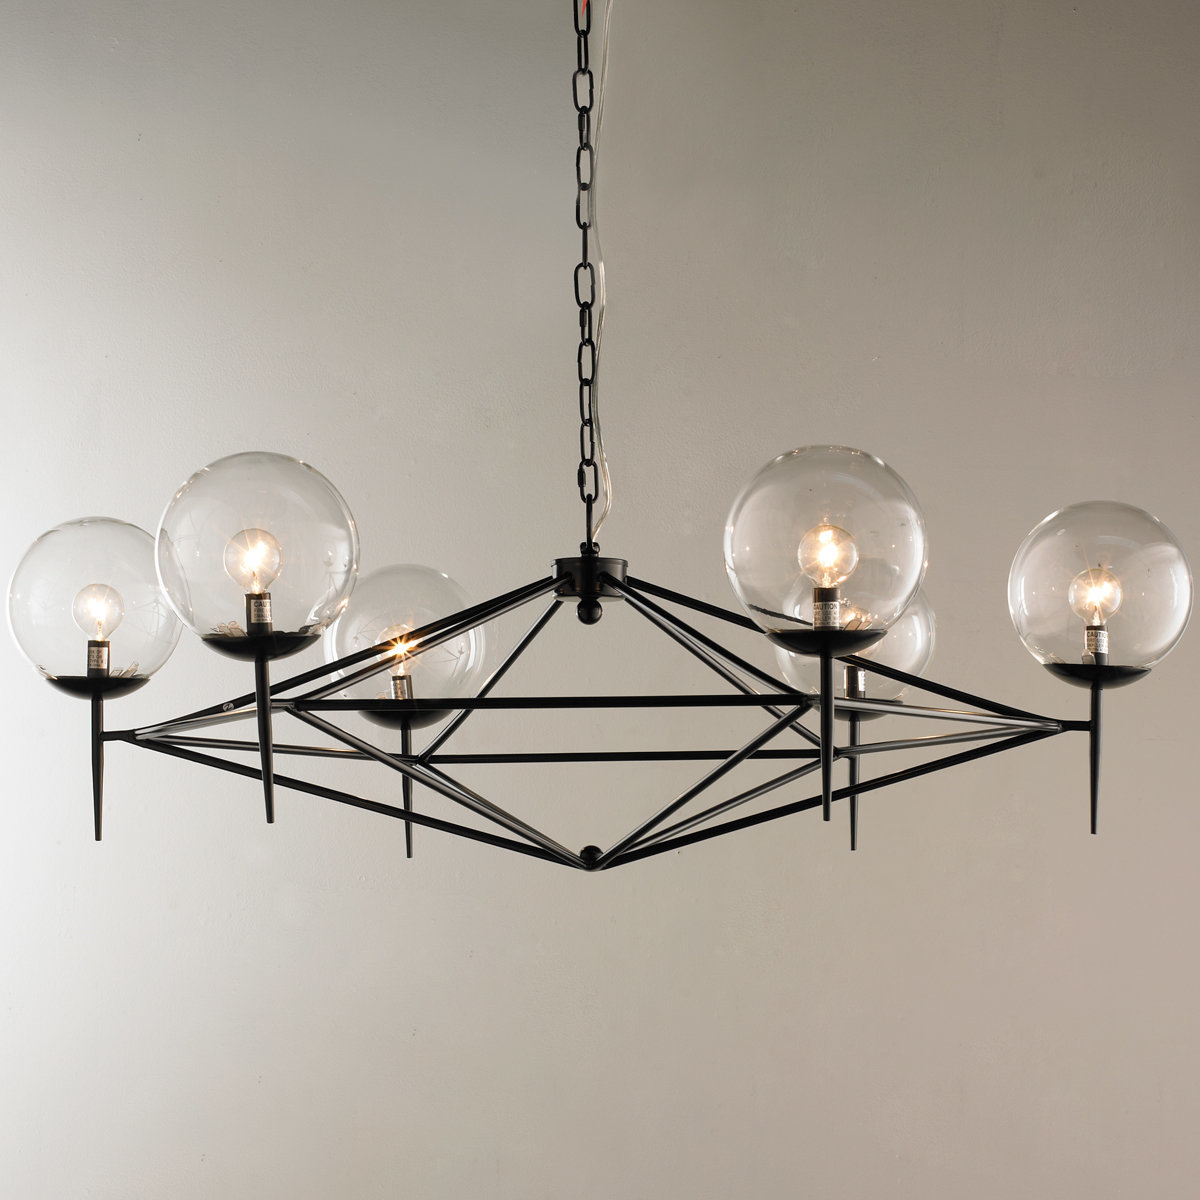 Luxury Interior Lighting Design with Glass Chandelier Shades: Replacement Shades For Chandeliers | Glass Chandelier Shades | Light Fixture Replacement Glass